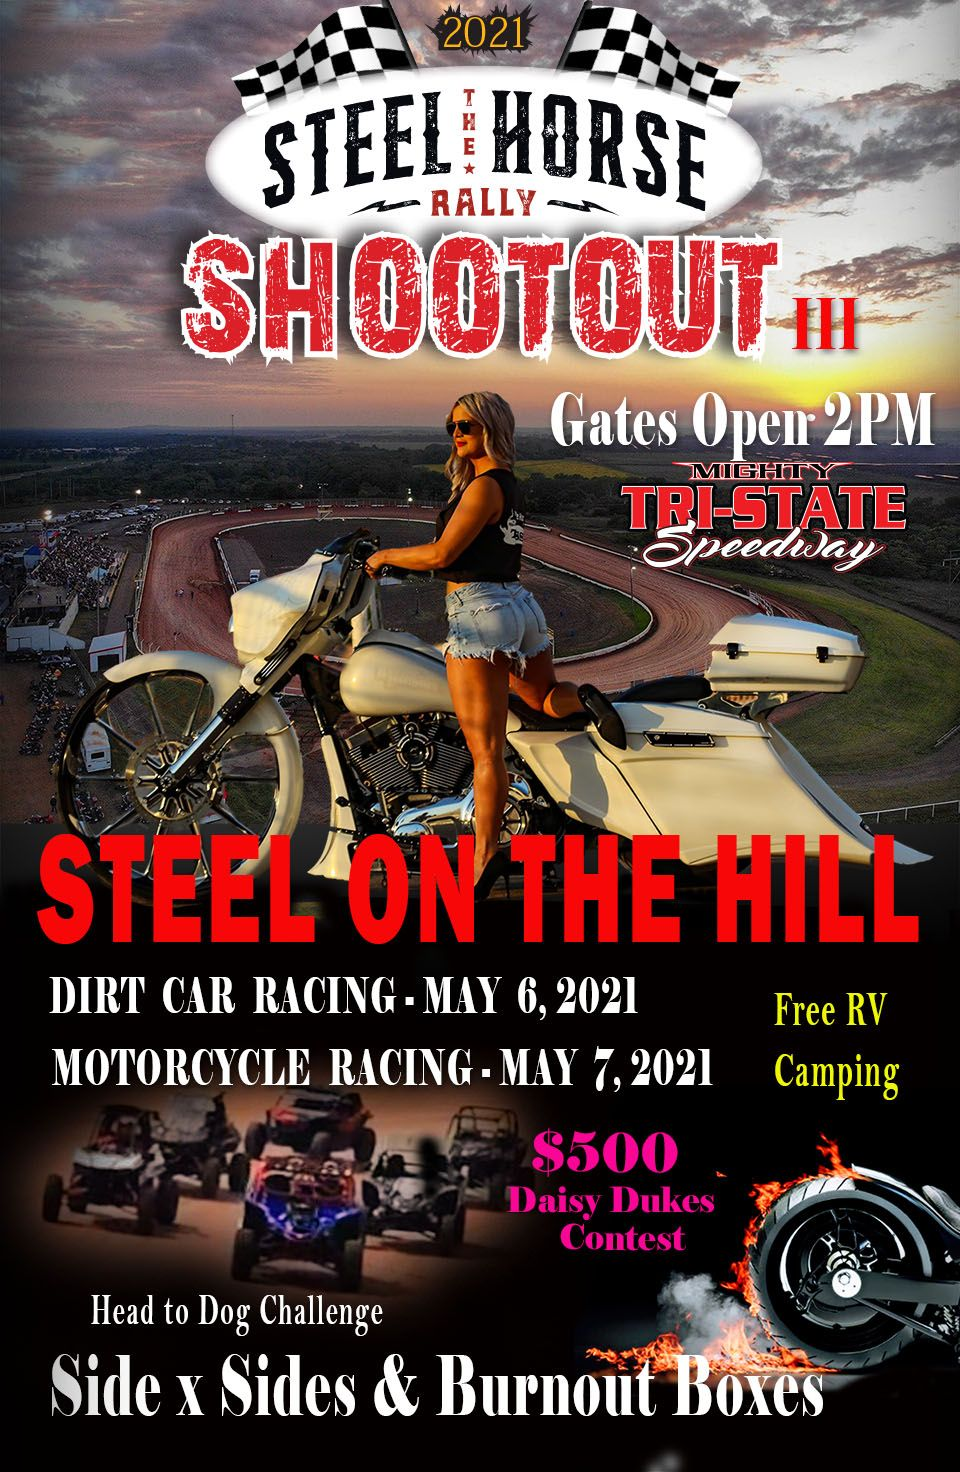 The Steel Horse Shootout III